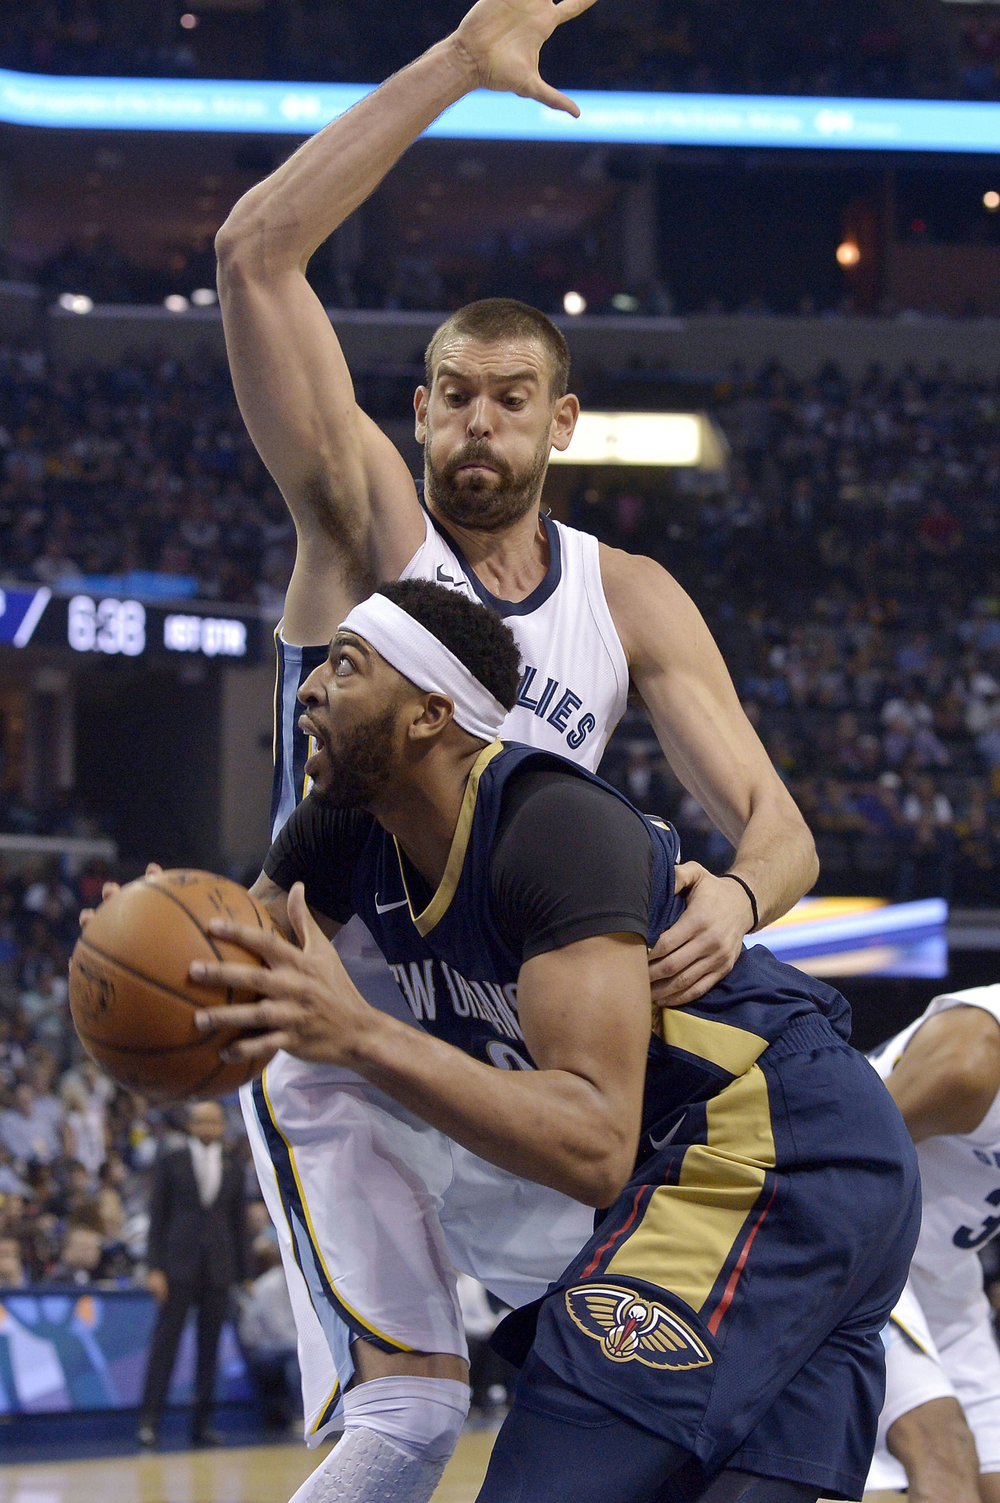 New Orleans Pelicans forward Anthony Davis, bottom, drives against Memphis Grizzlies center Marc Gasol during the first half of an NBA basketball game Wednesday, Oct. 18, 2017, in Memphis, Tenn. (Brandon Dill/AP)